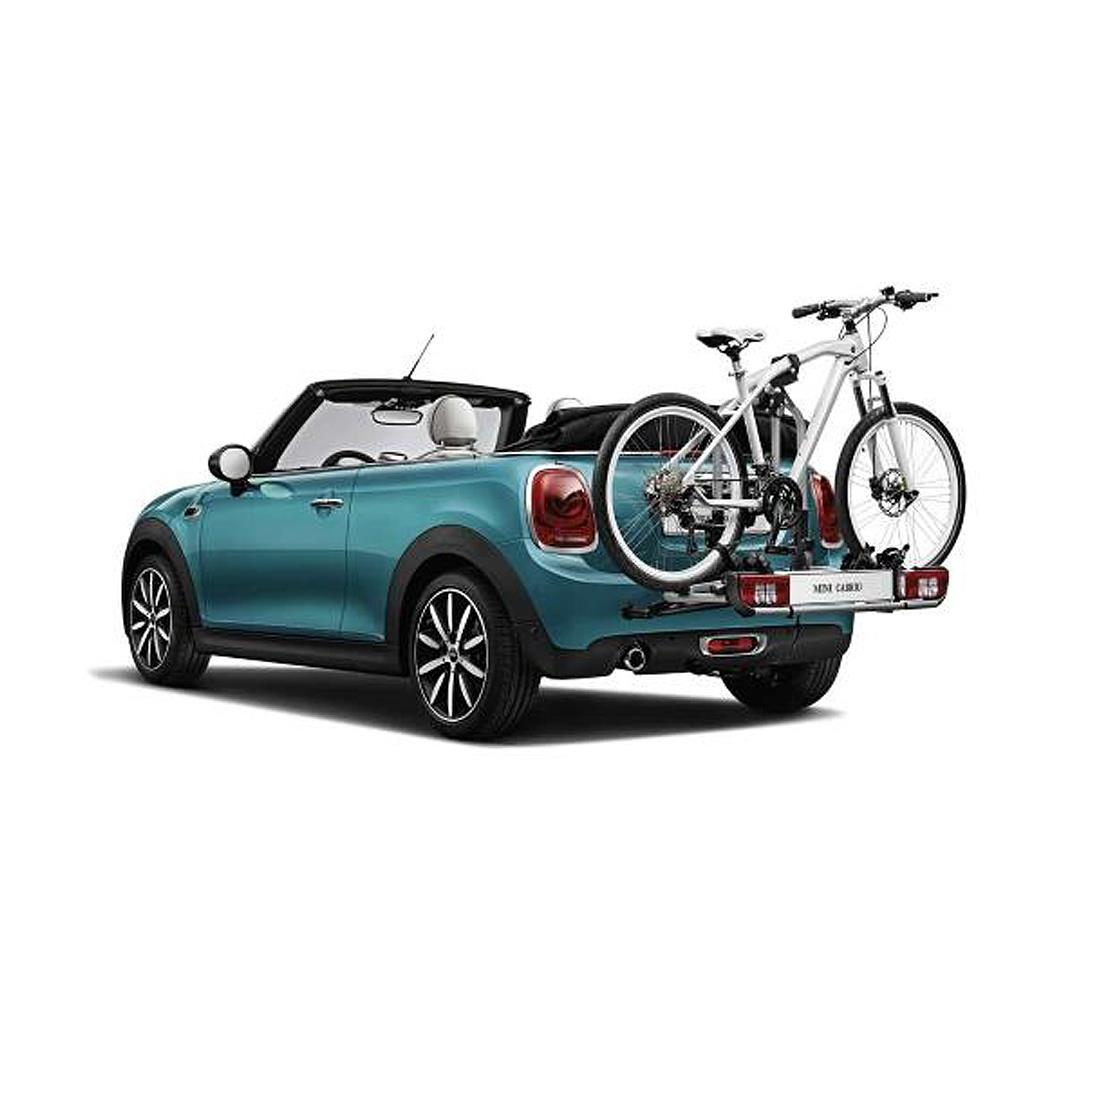 Best Bike Rack For Mini Cooper: ShopMINIUSA.com: MINI Rear Bike Rack And License Plate Holder